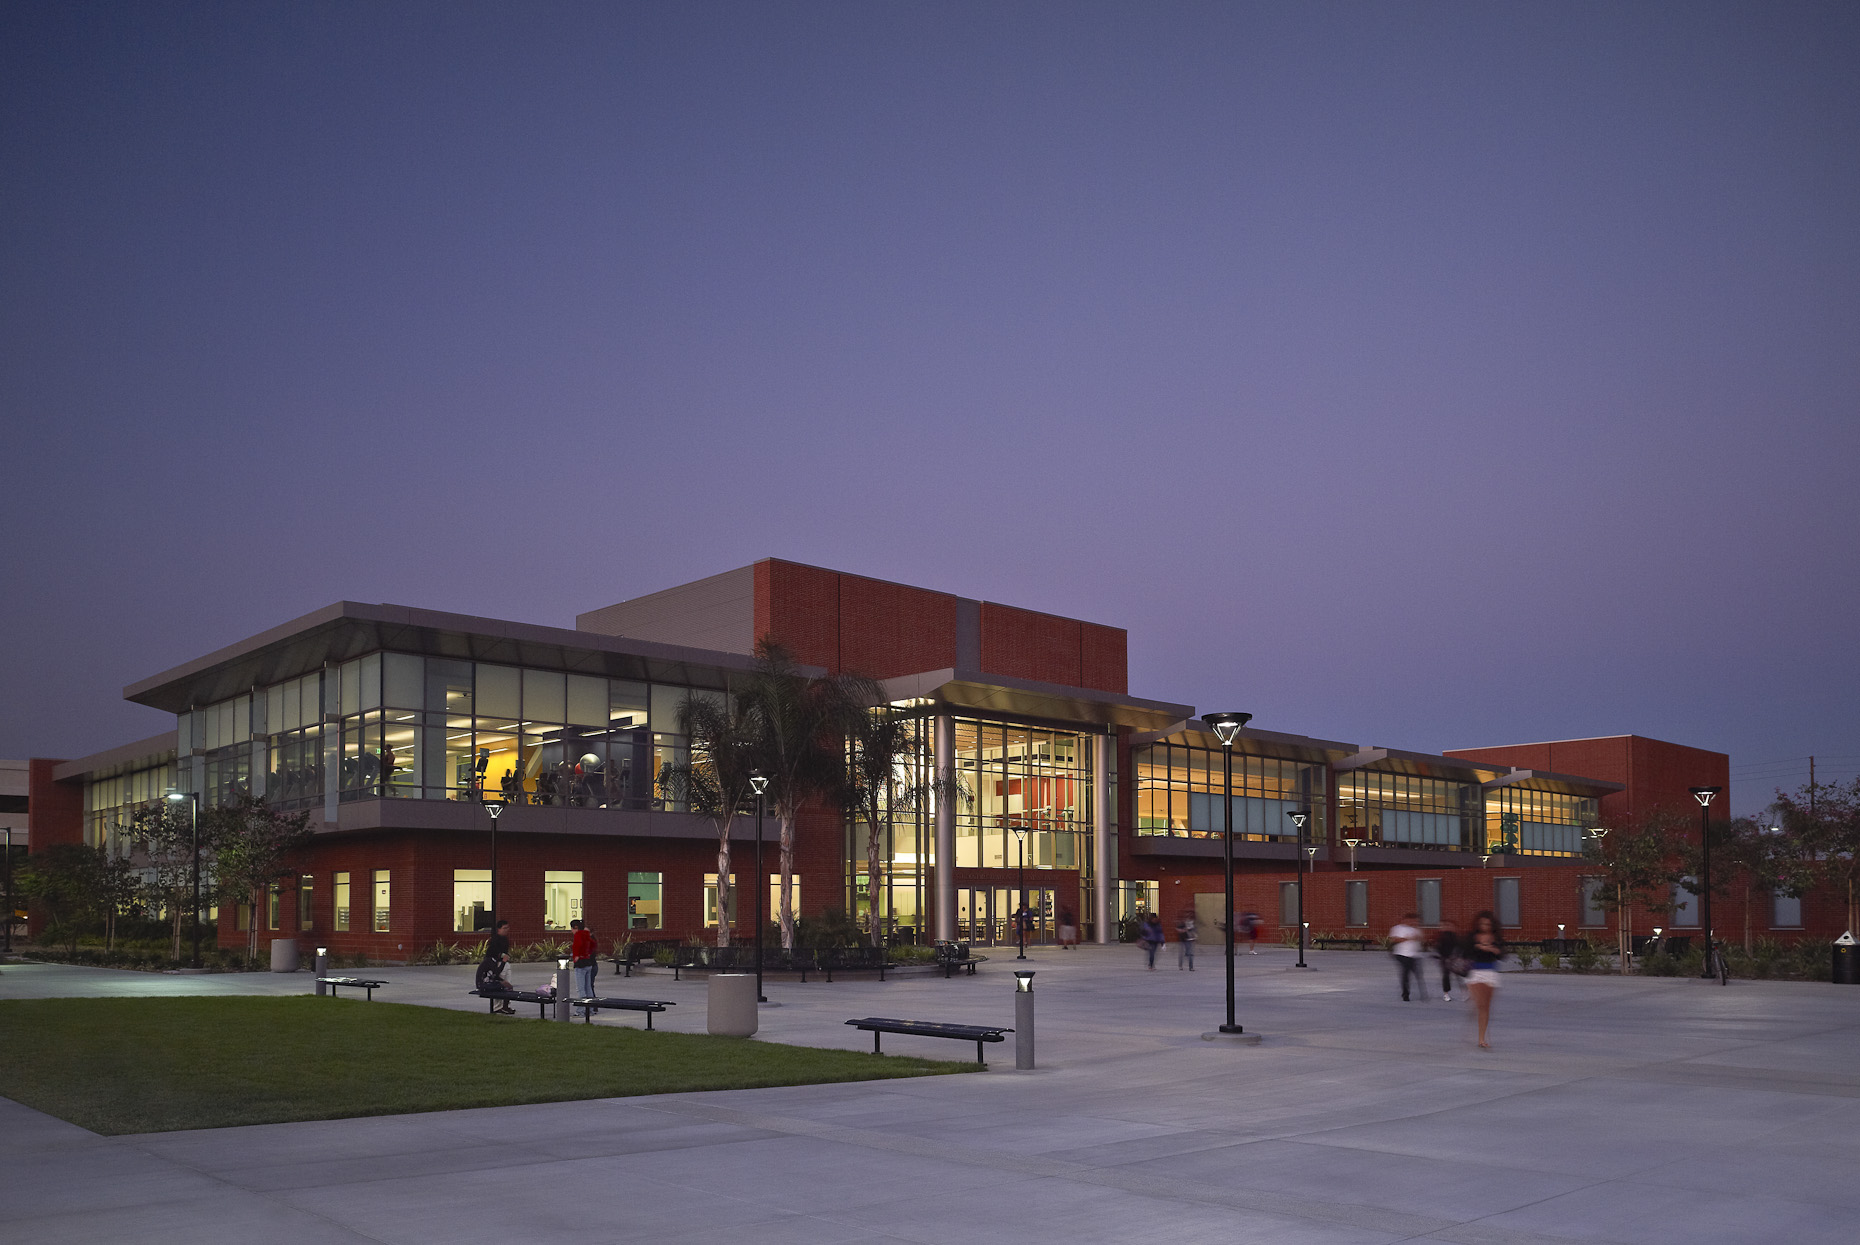 Cal State Long Beach Recreation & Wellness Center by Cannon Design photographed by Brad Feinknopf based in Columbus, Ohio